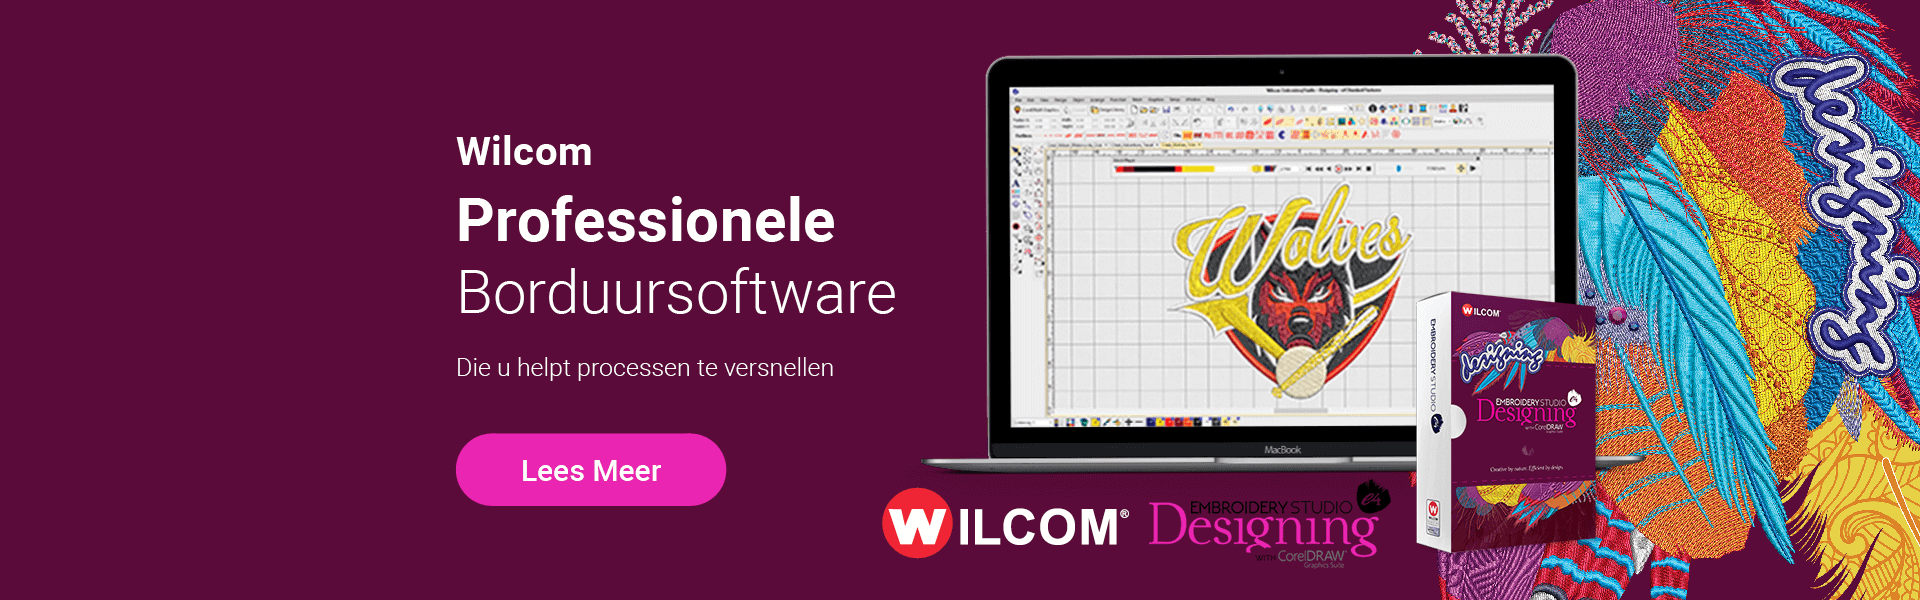 Wilcom Software borduursoftware